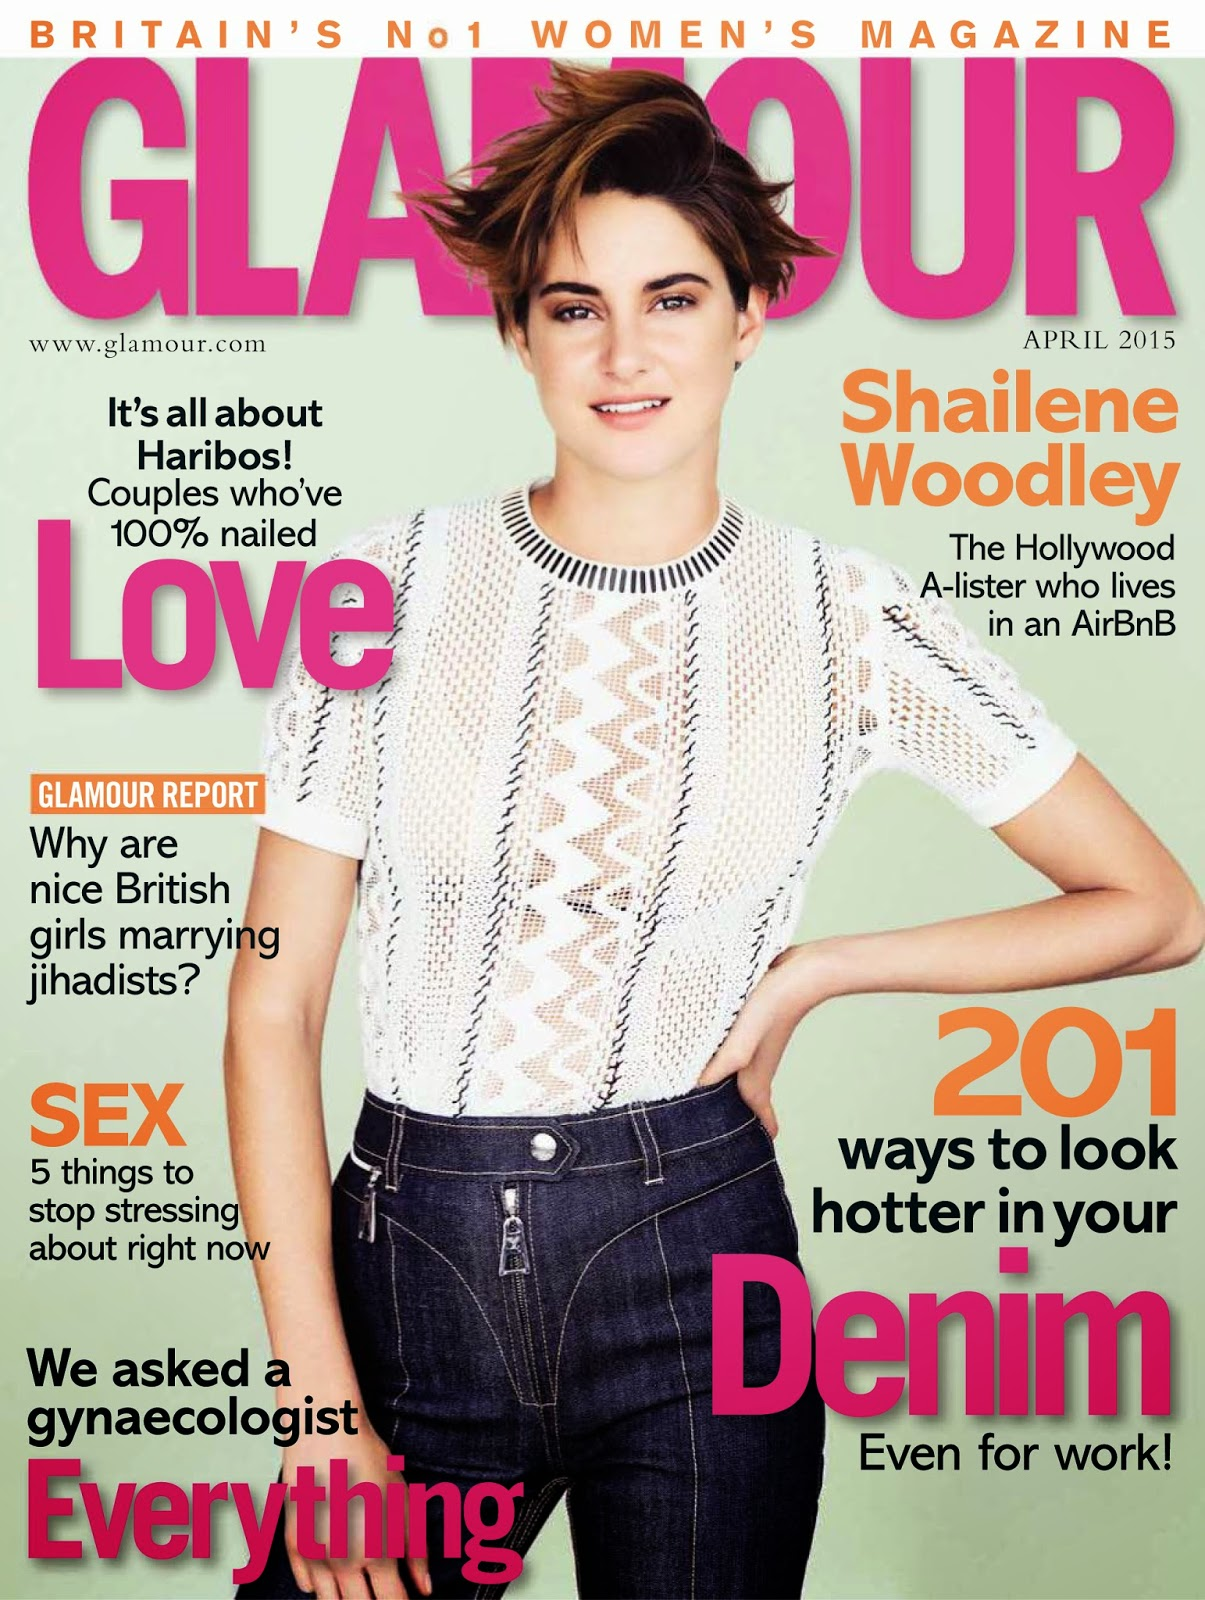 Actress @ Shailene Woodley - Glamour UK April 2015